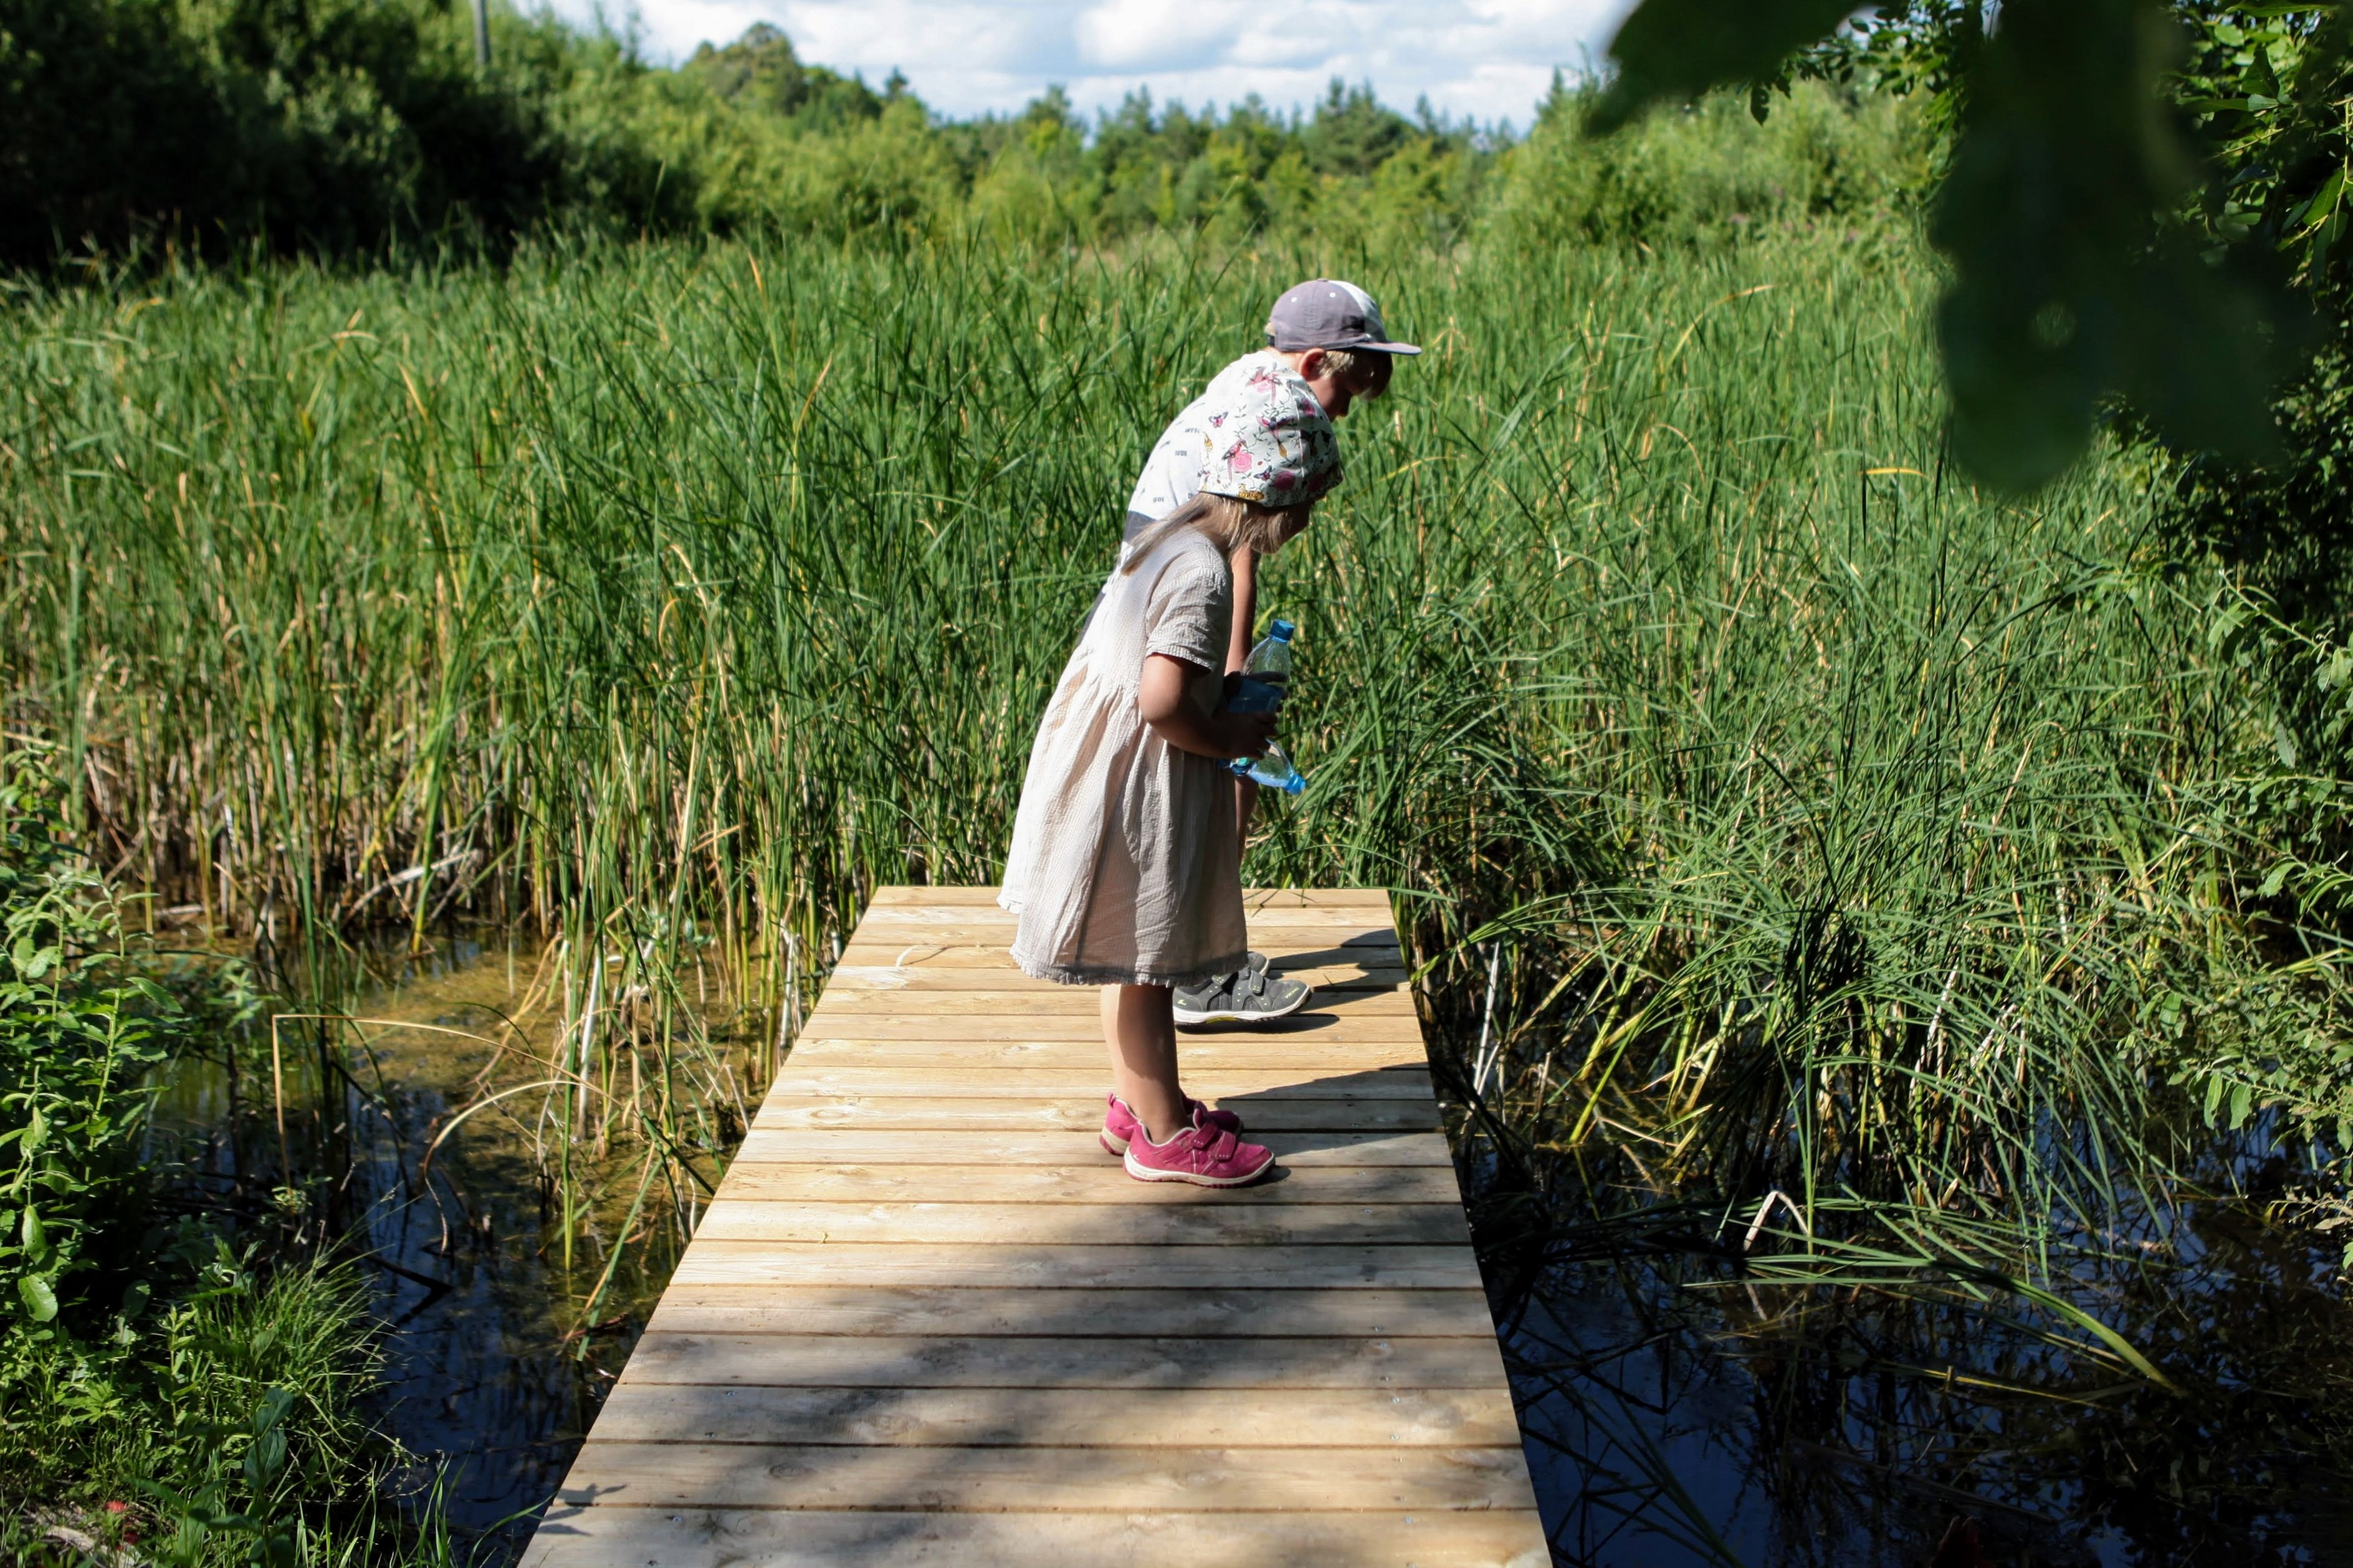 Saaremaa offers exciting hiking trails for children as well